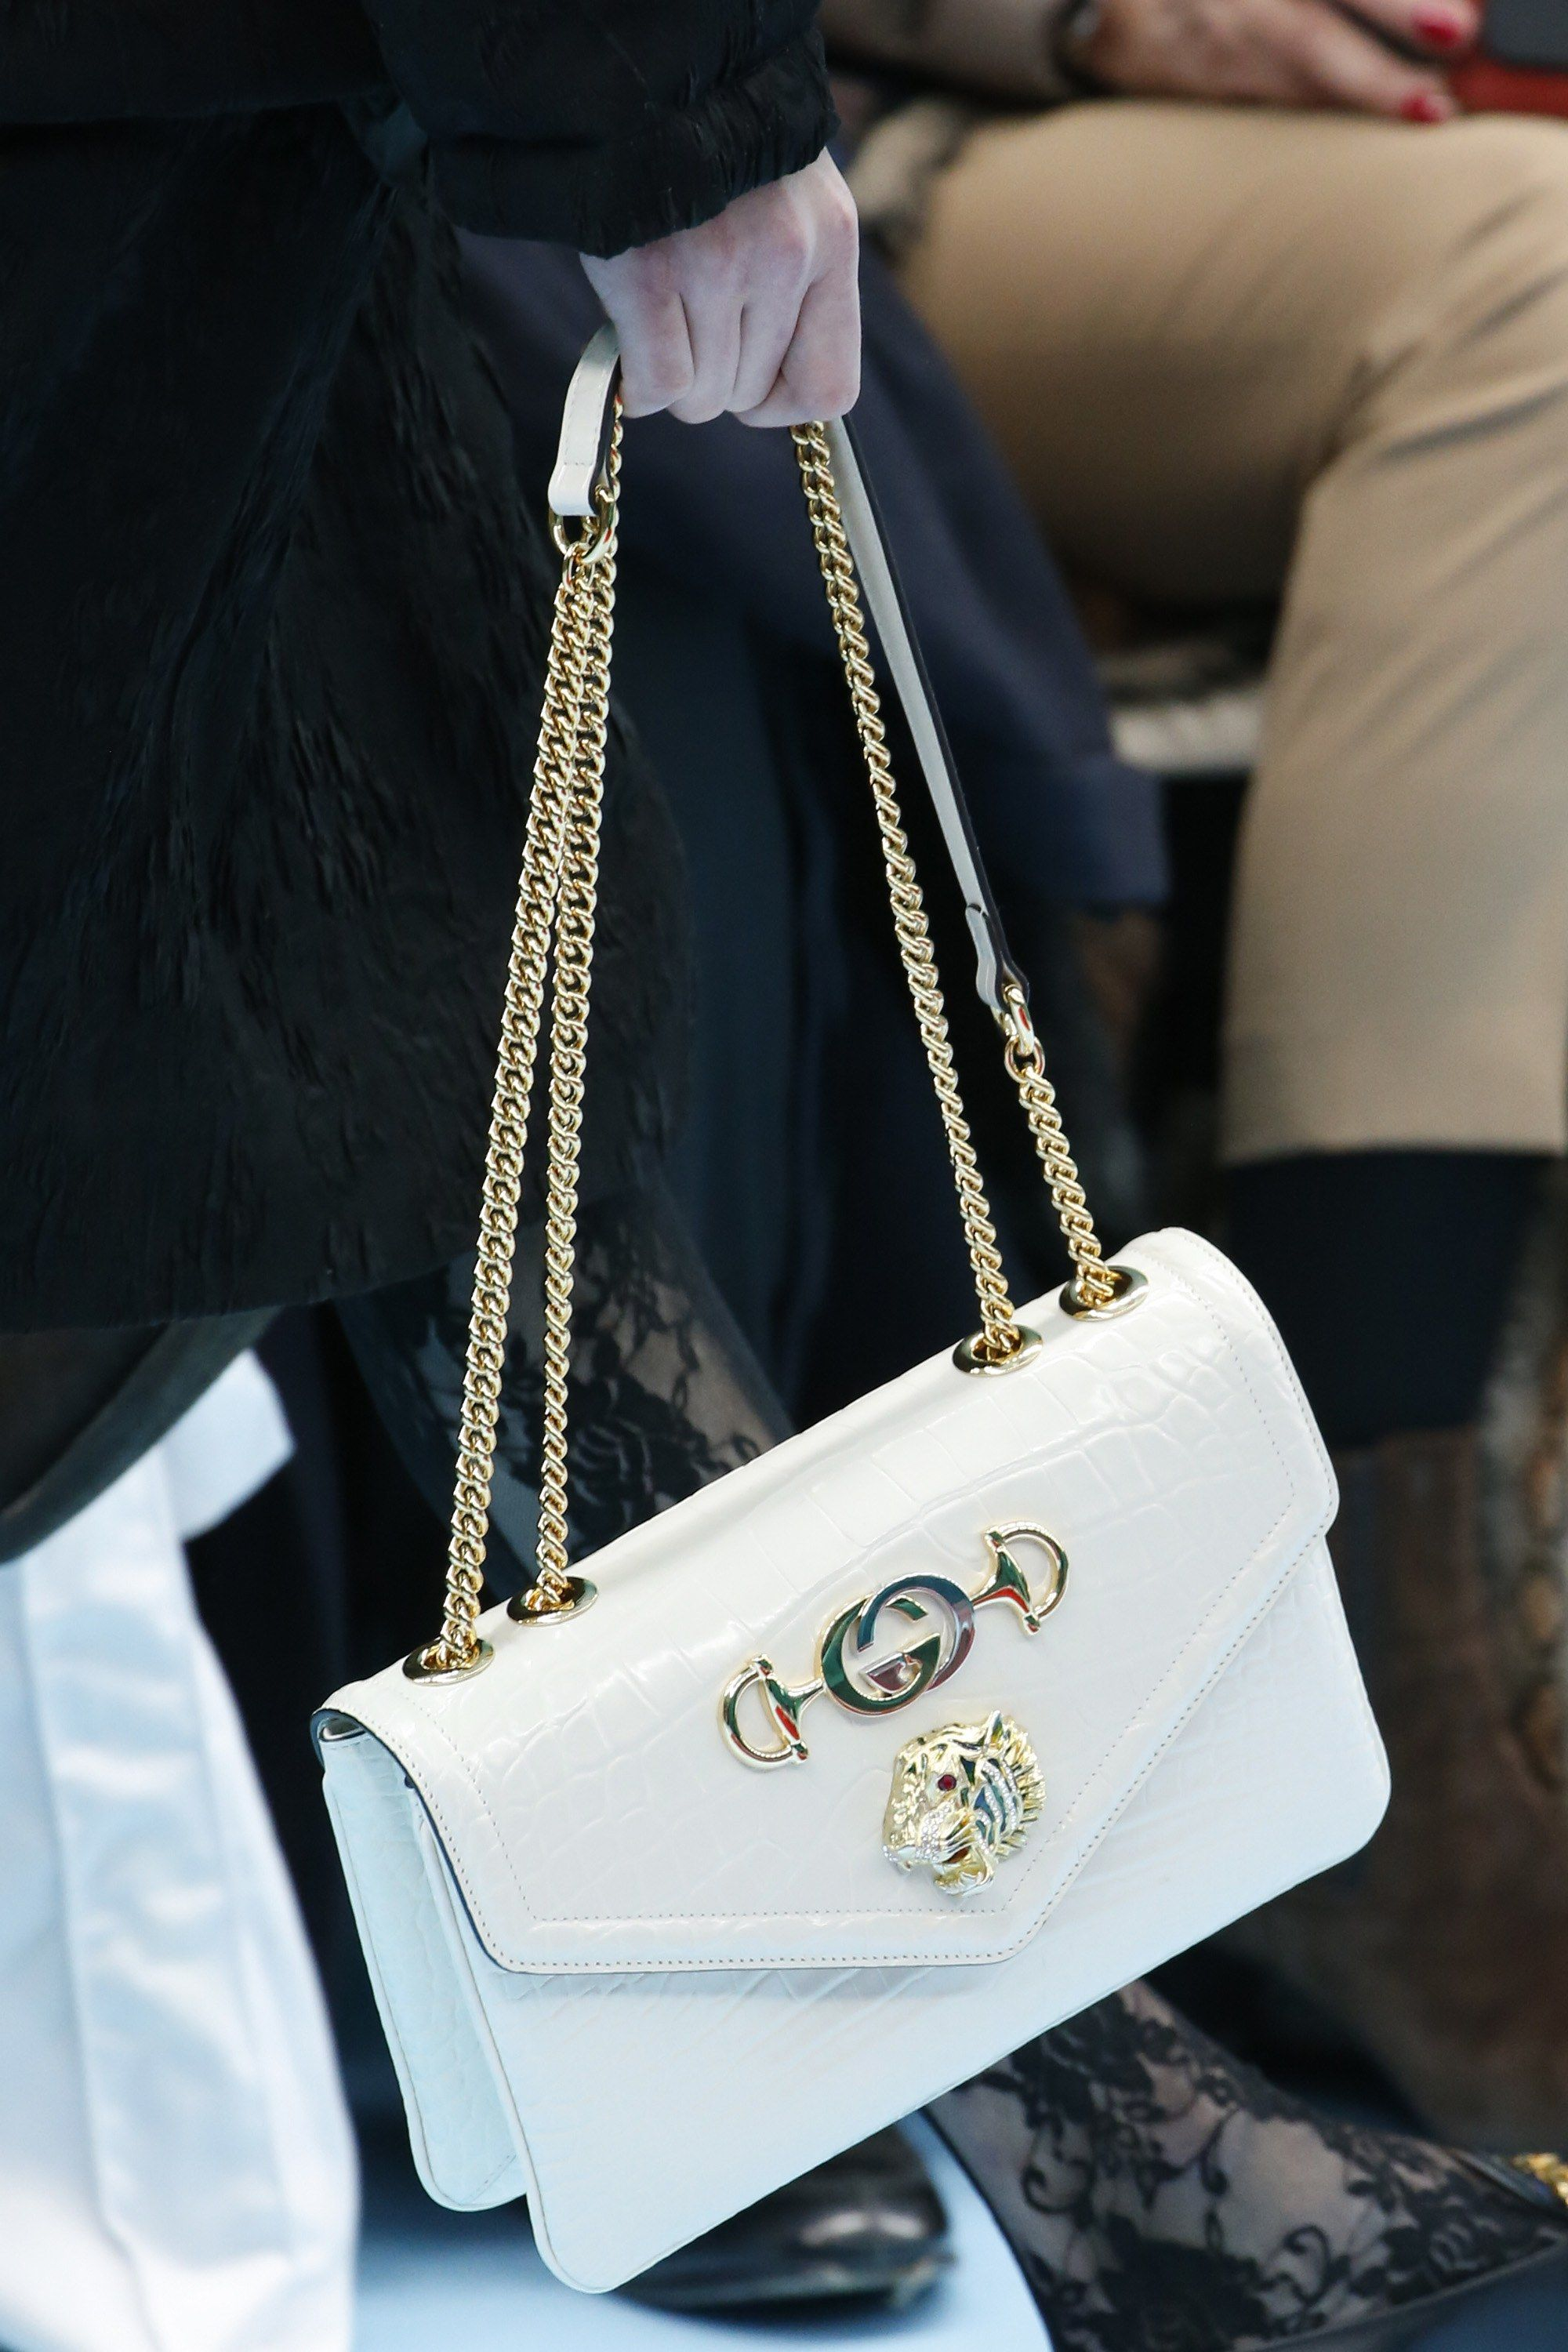 86d717b66602 Gorgeous white Gucci bag with a chain strap & tiger head embellishments -  Gucci Fall 2018 #guccigang...x